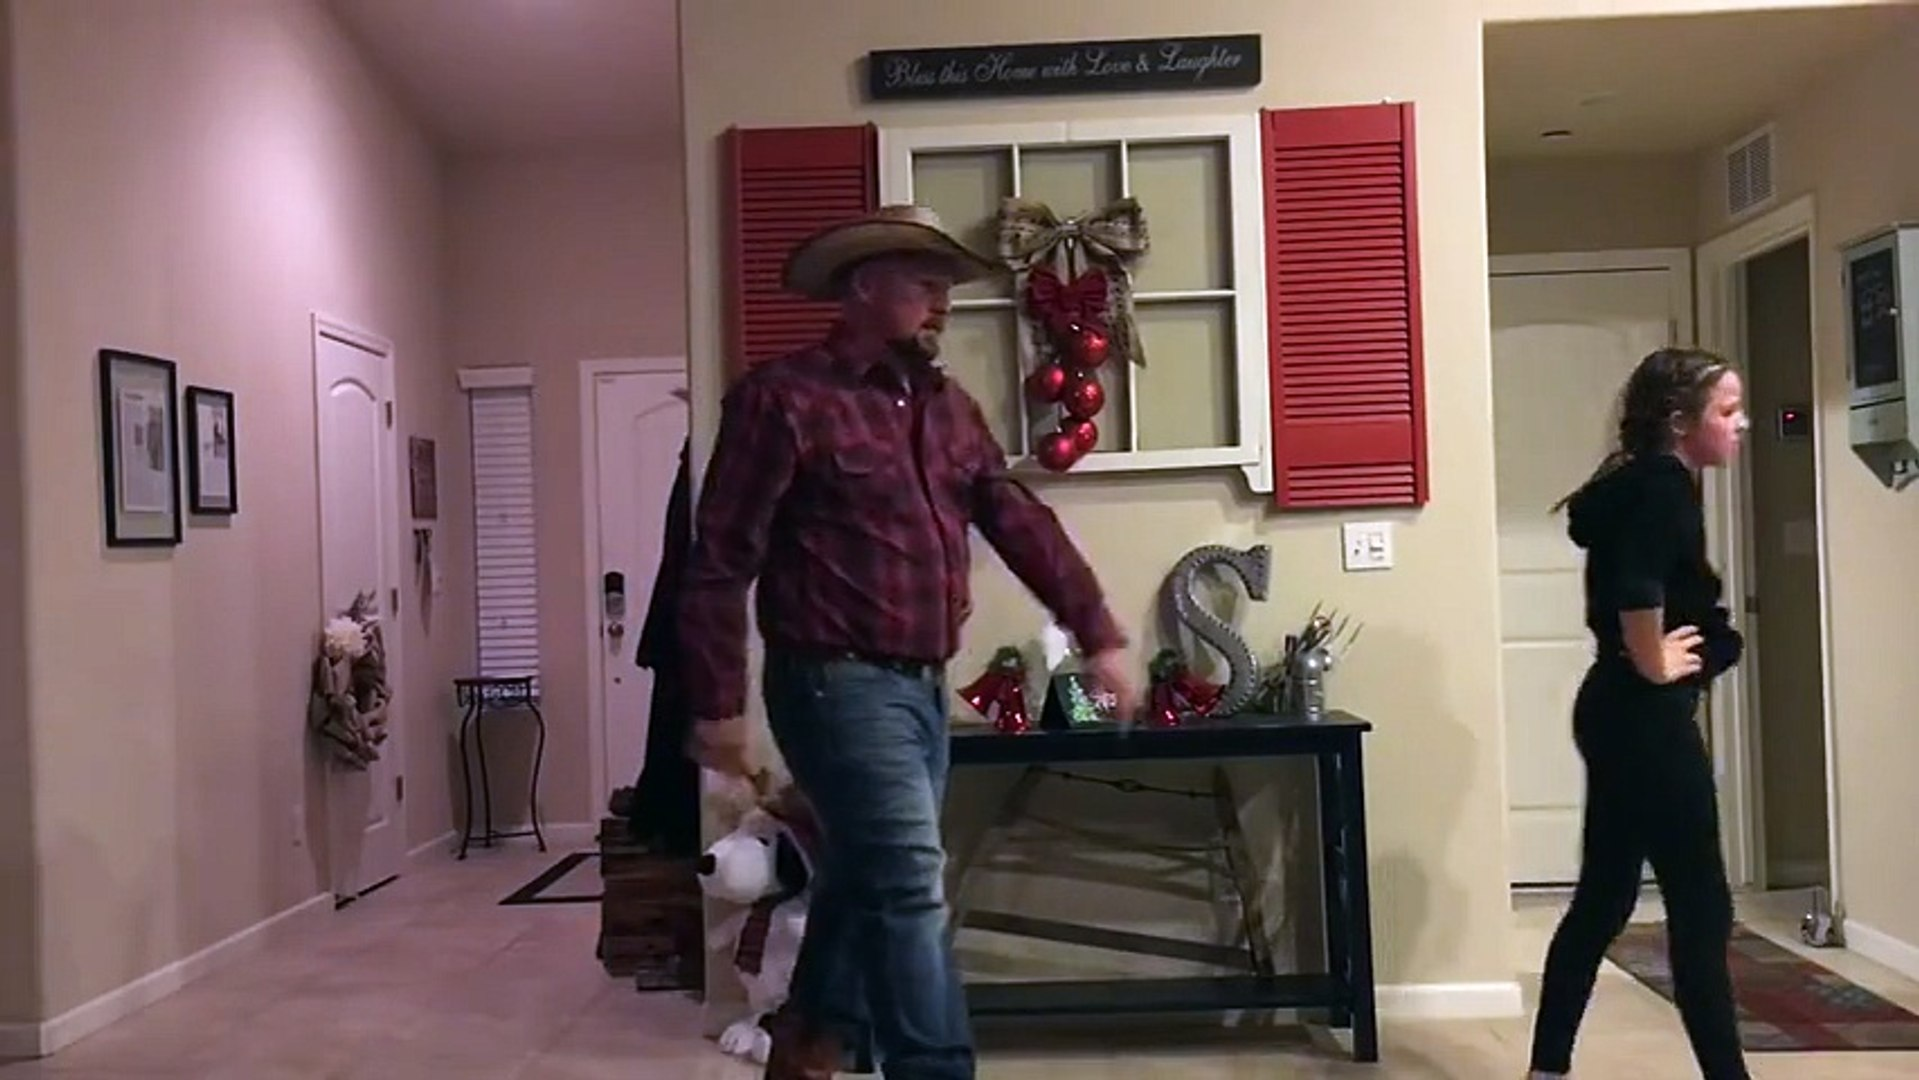 Dad performs epic hip hop dance with daughter - and twerks!